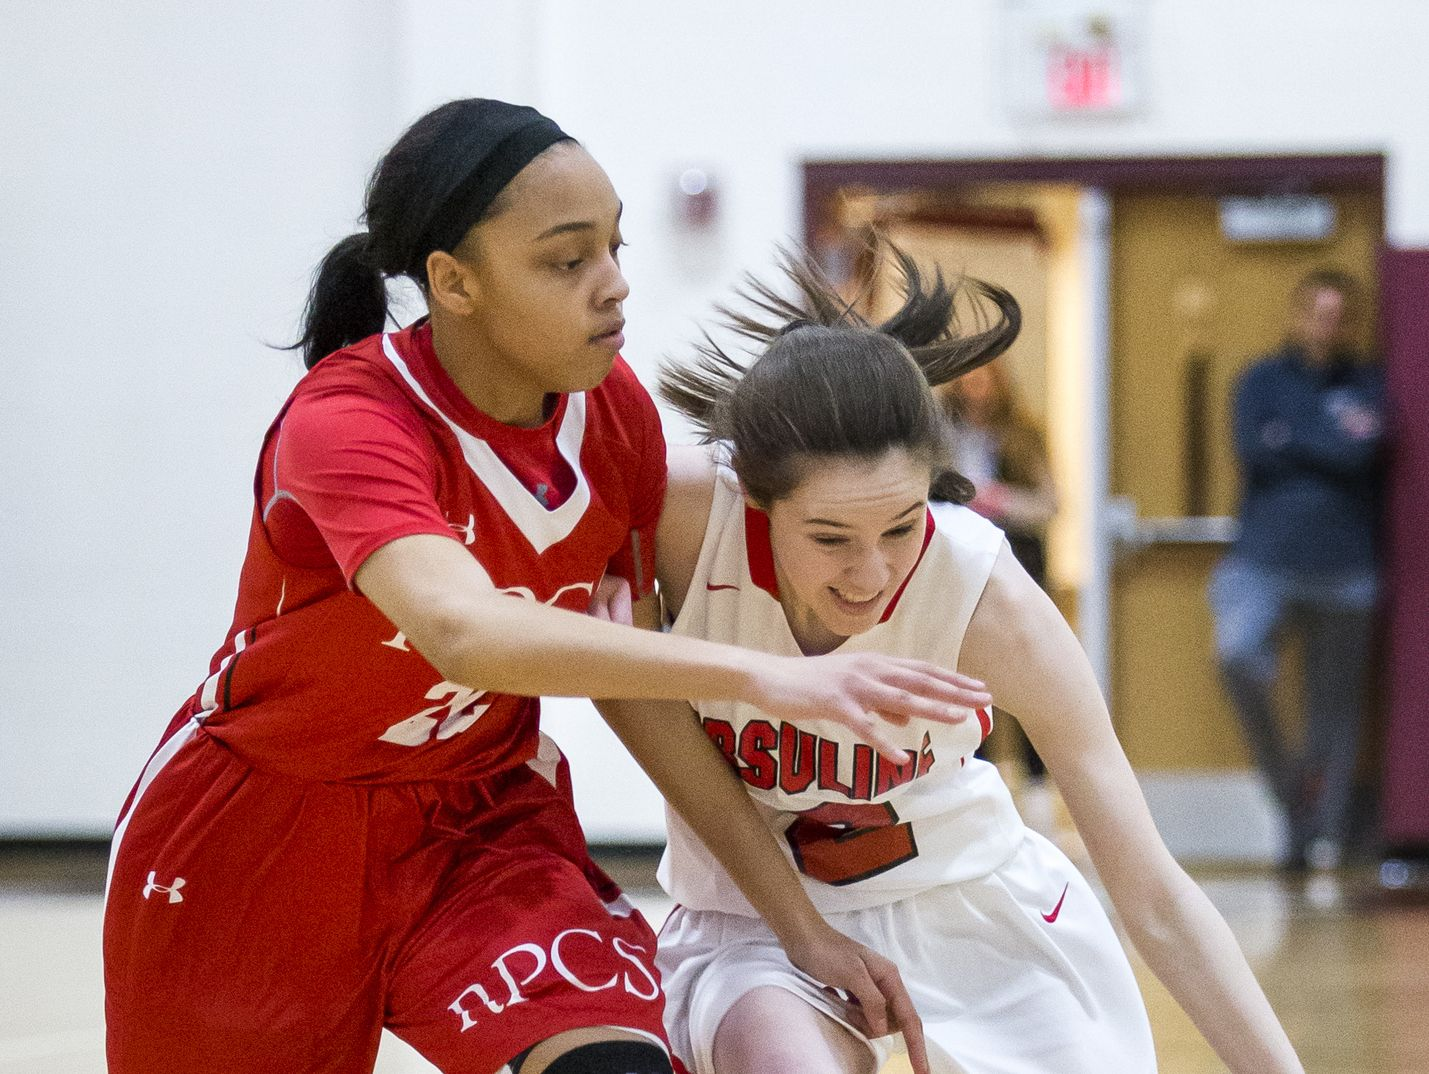 Ursuline's Maggie Connolly (right) drives to the basket against Roland Park's Aniyah Carpenter at the Diamond State Classic in December.